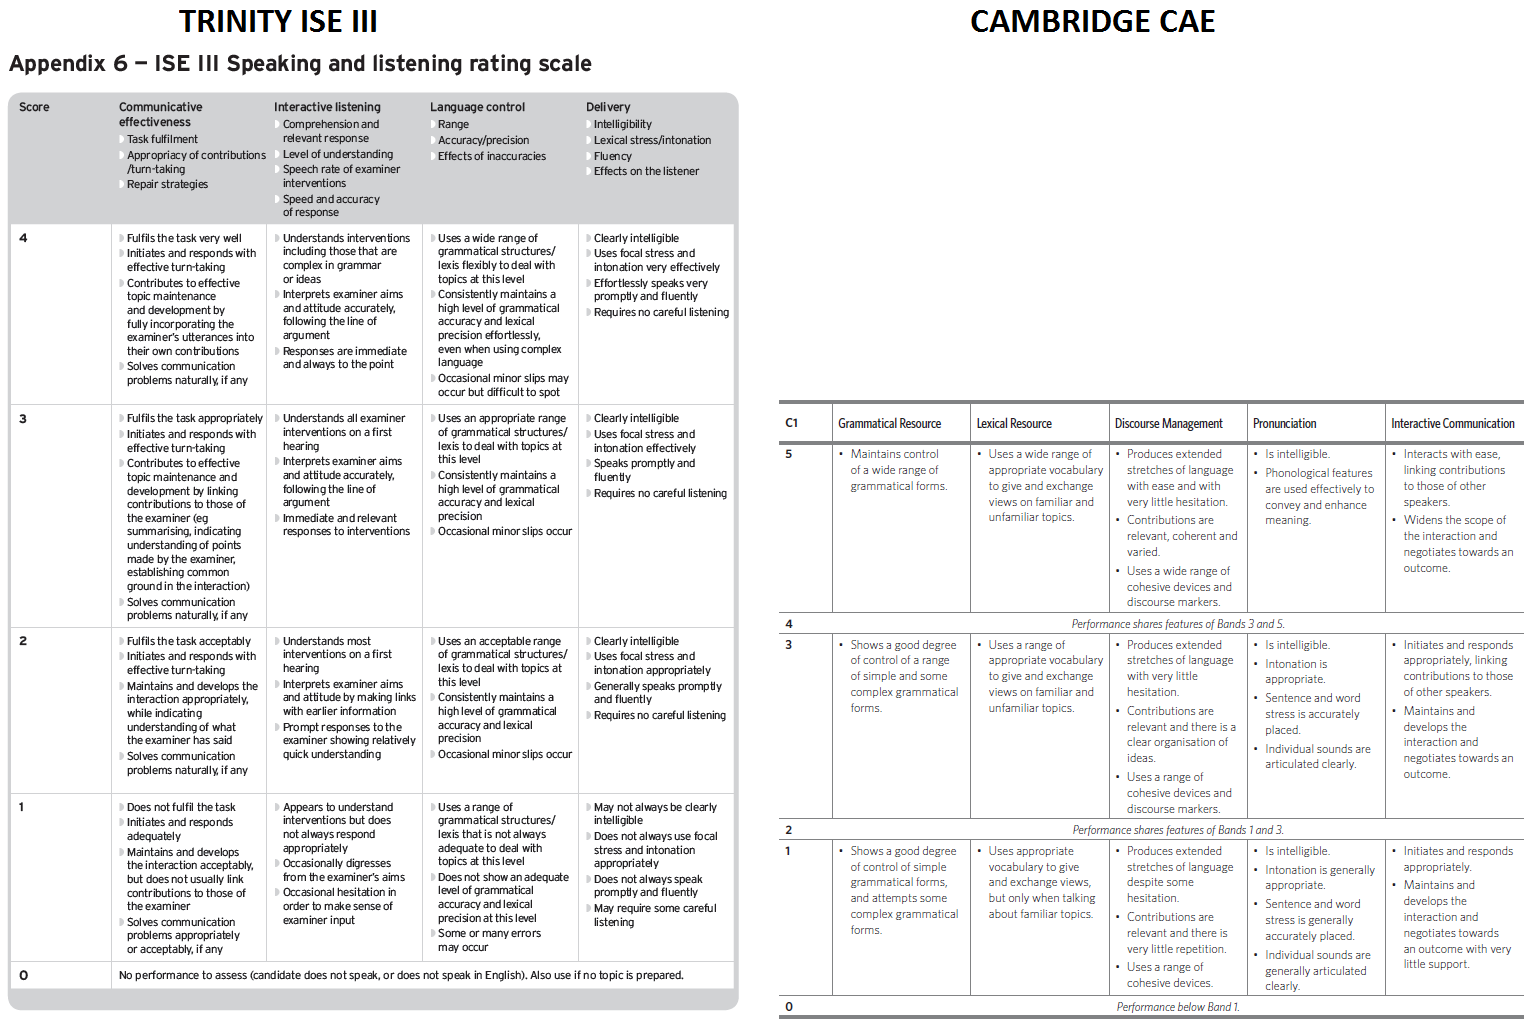 Cambridge CAE VS ISE iIi TRINITY C1 speaking scale ORAL EXAMS